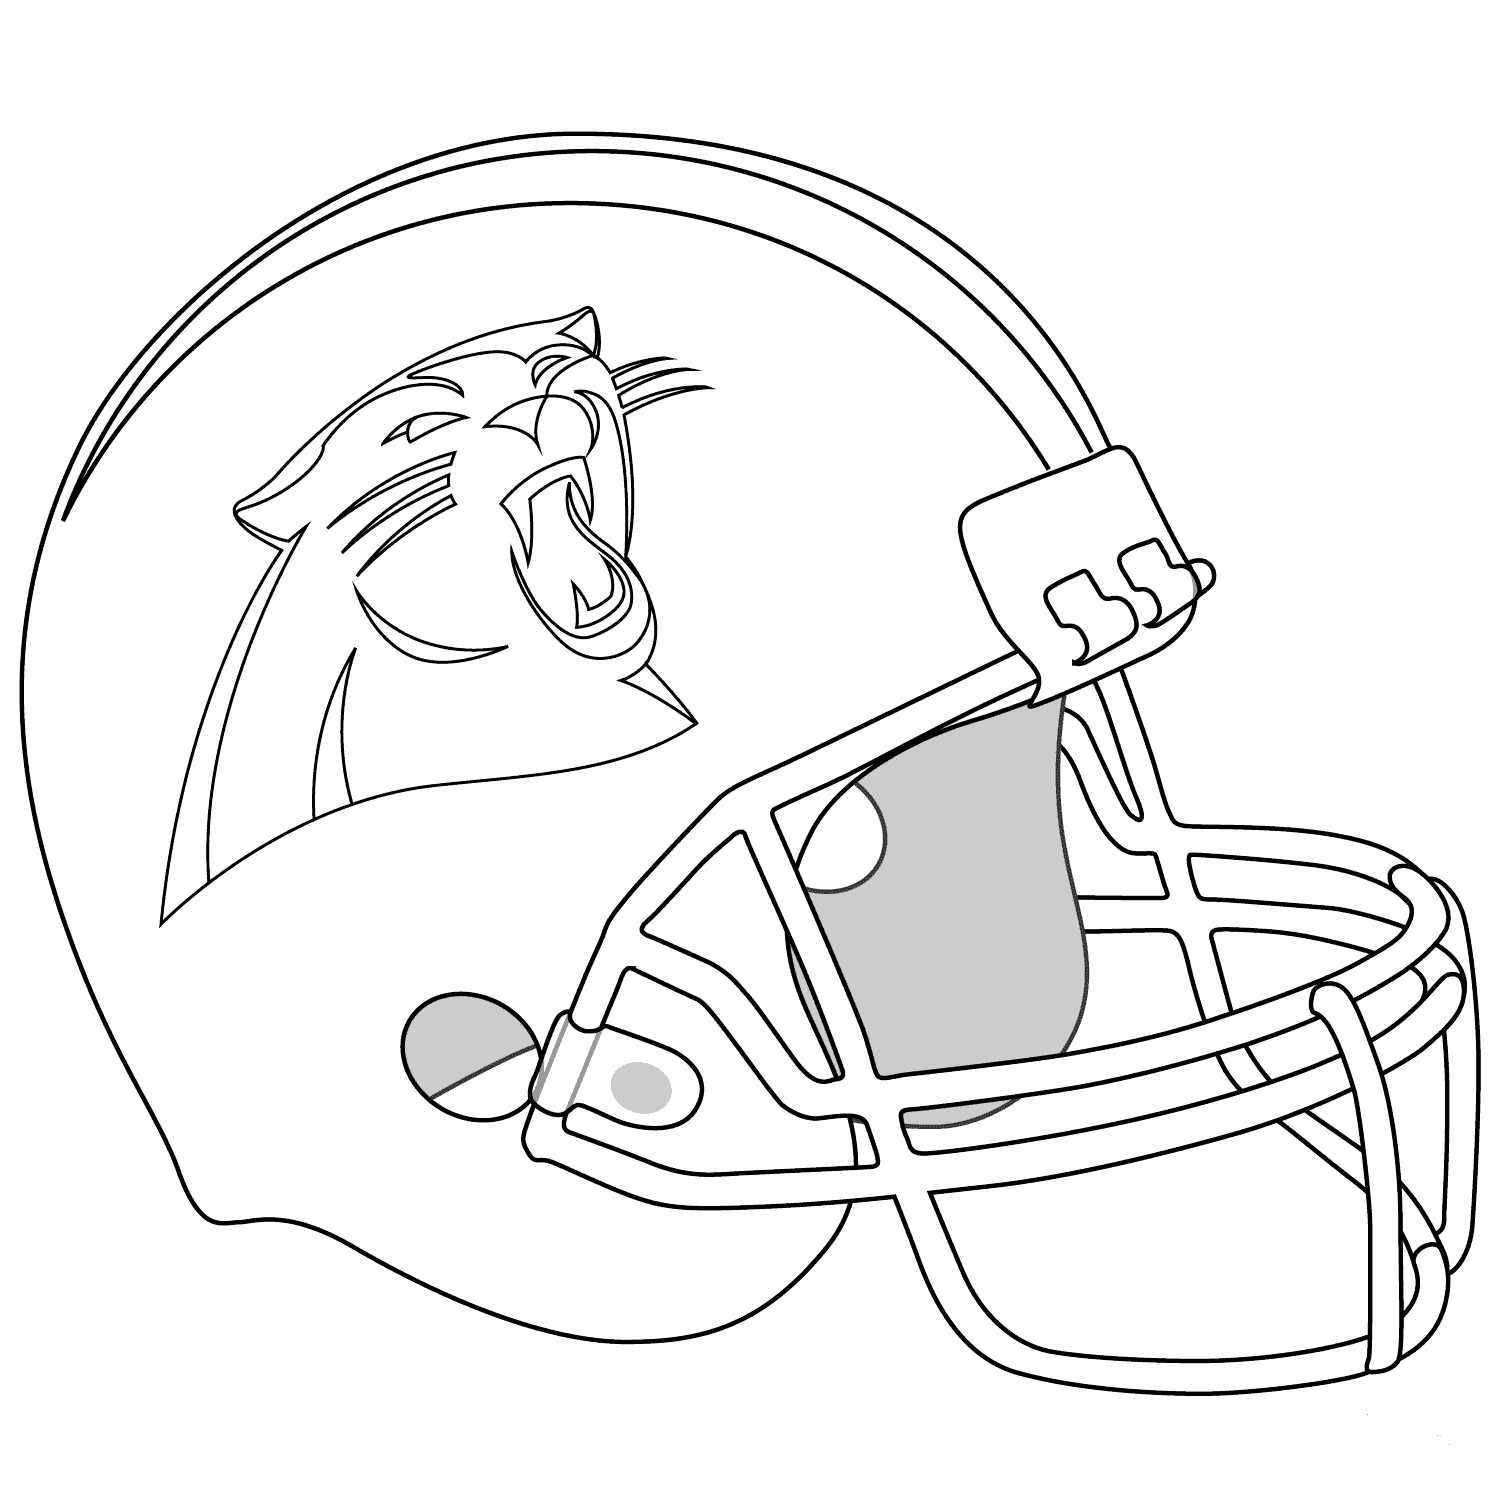 Carolina Panthers Helmet Coloring Page